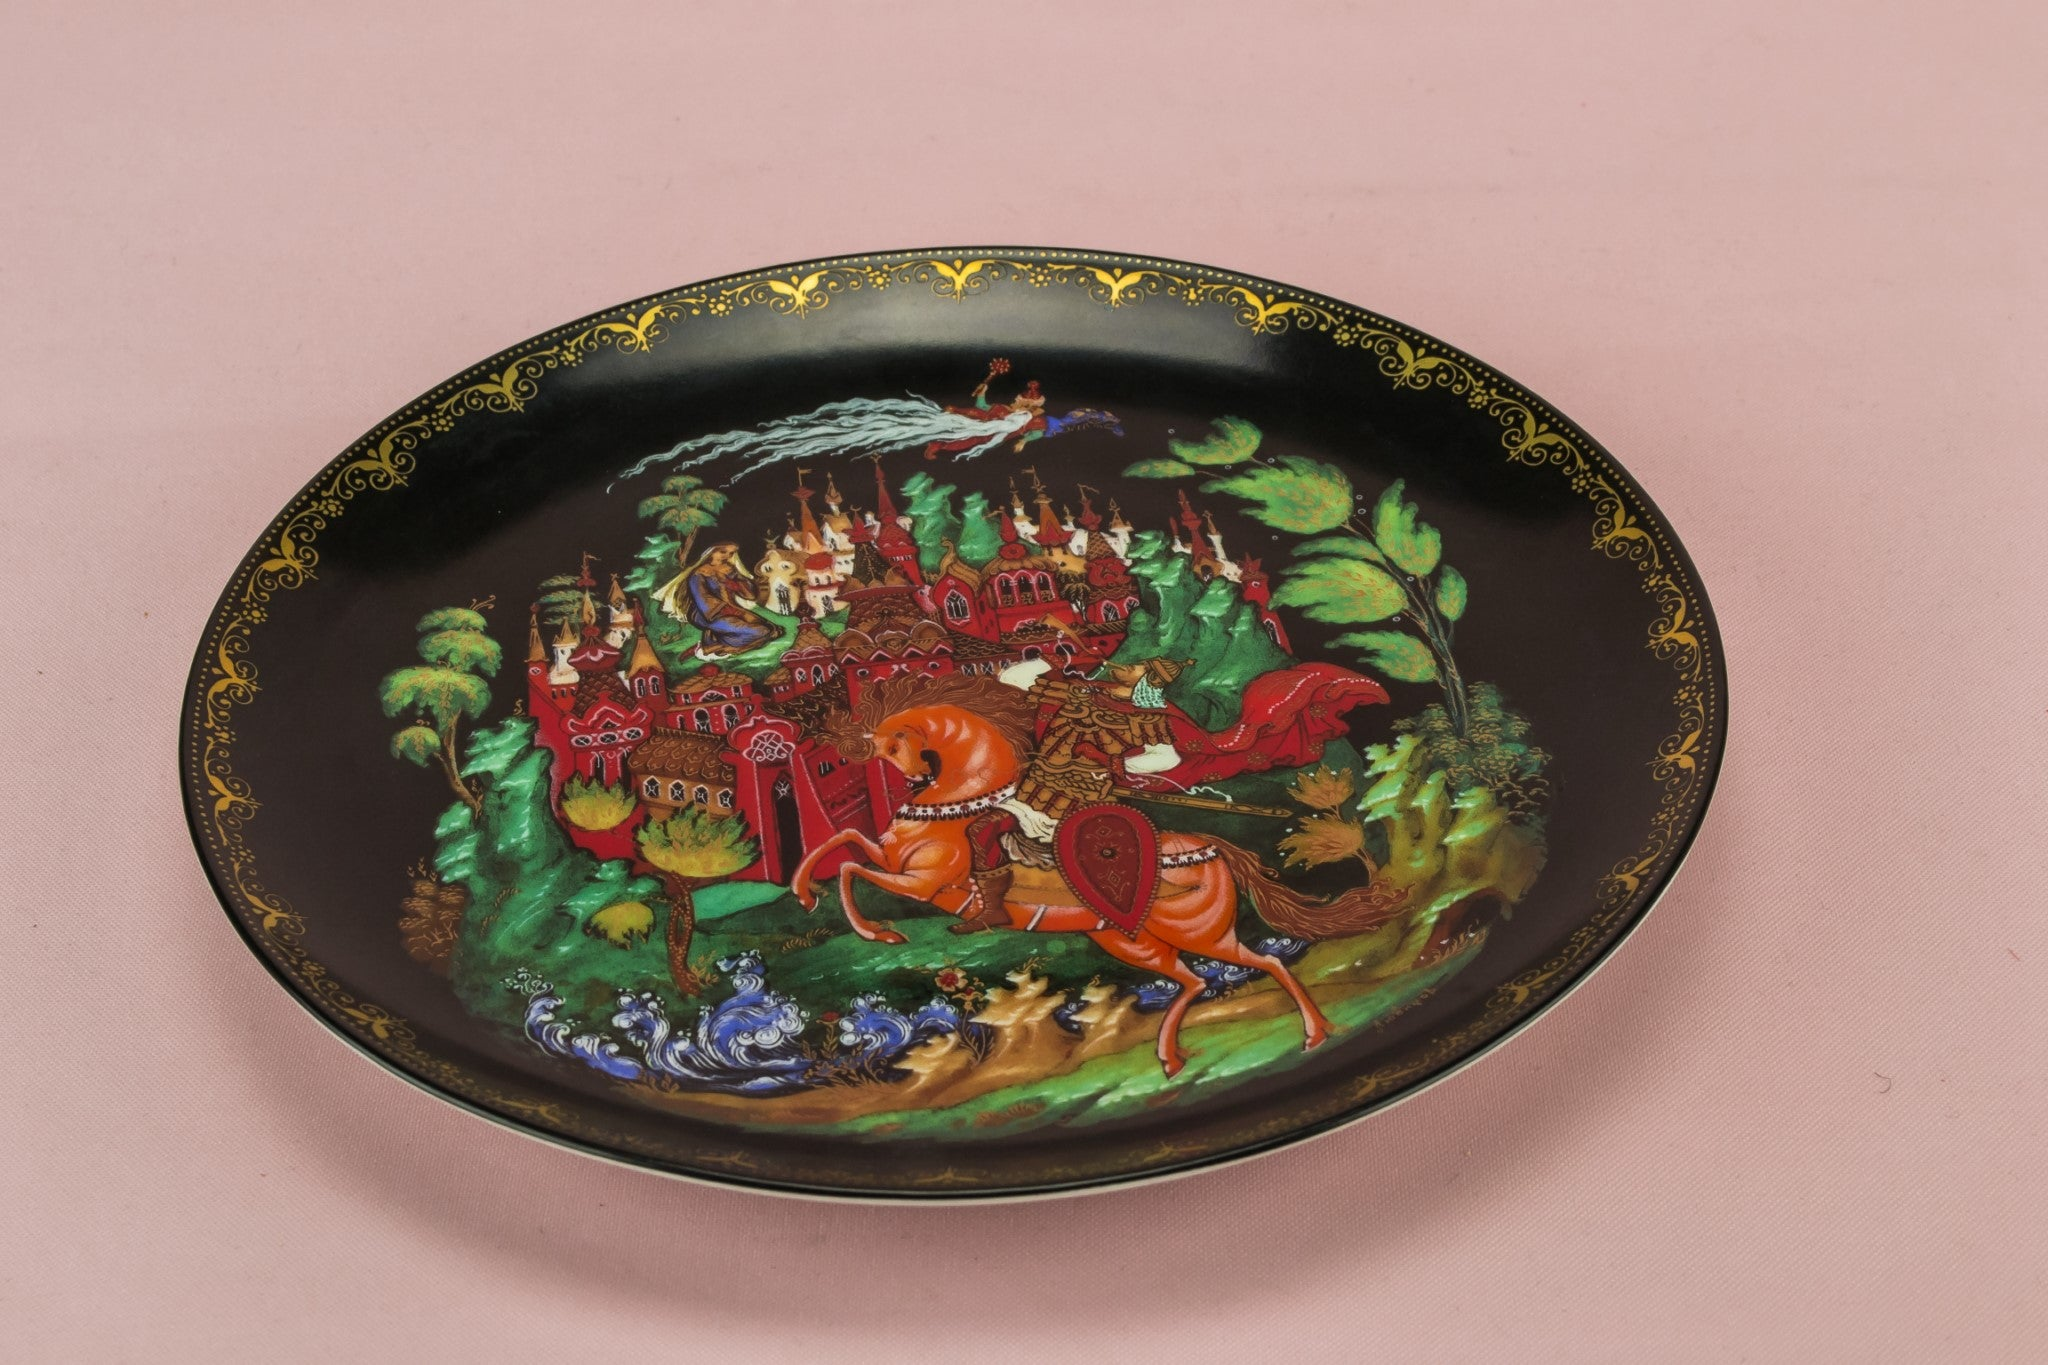 Fairy tale painted plate